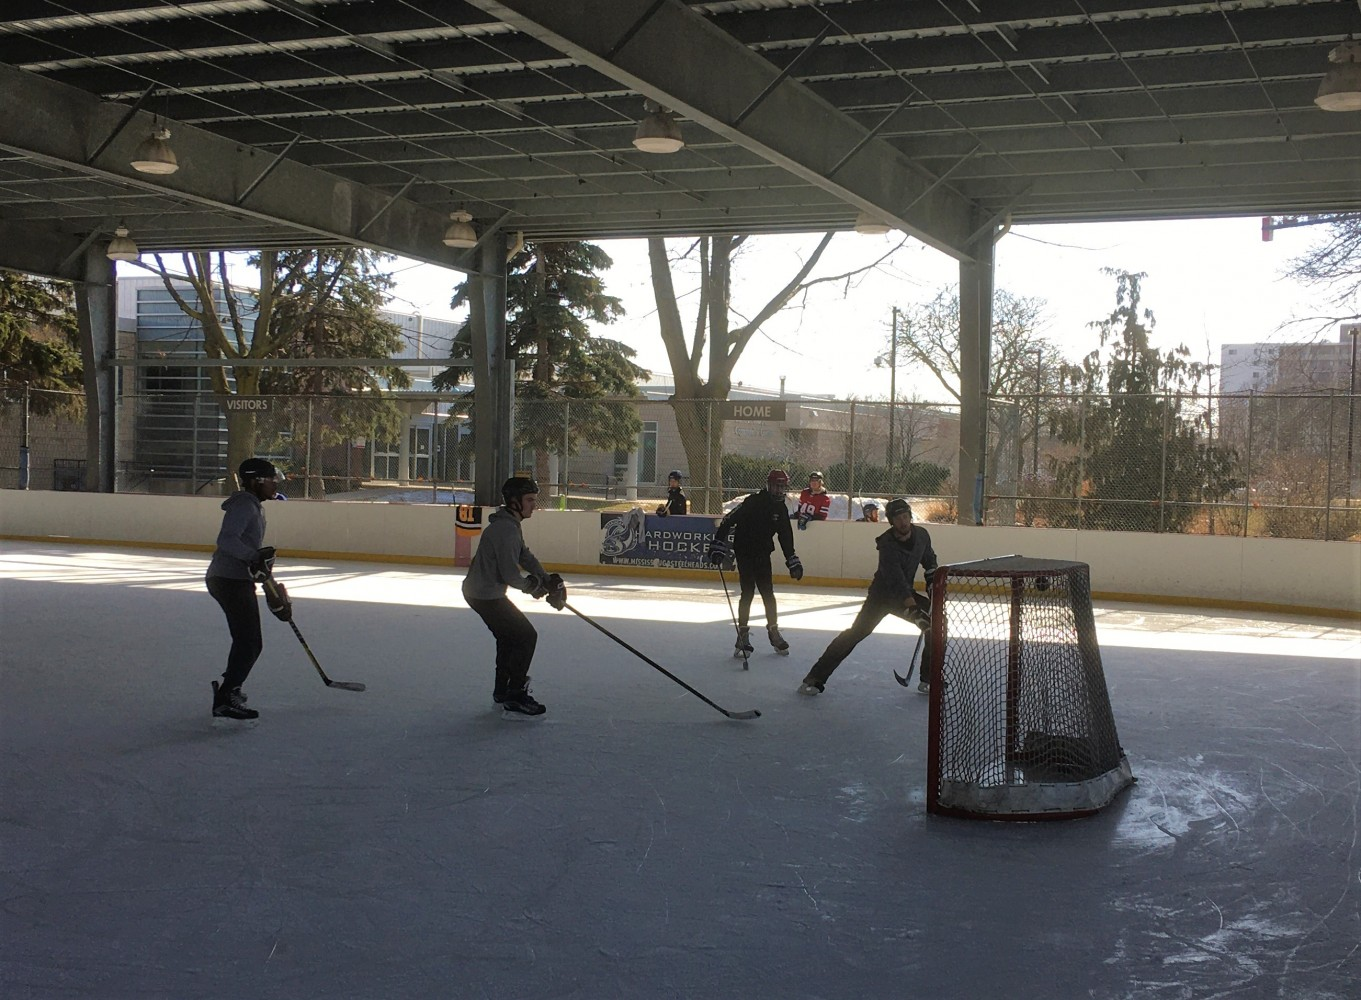 Public consultation on demolition of Mississauga outdoor rink lacked transparency, residents say